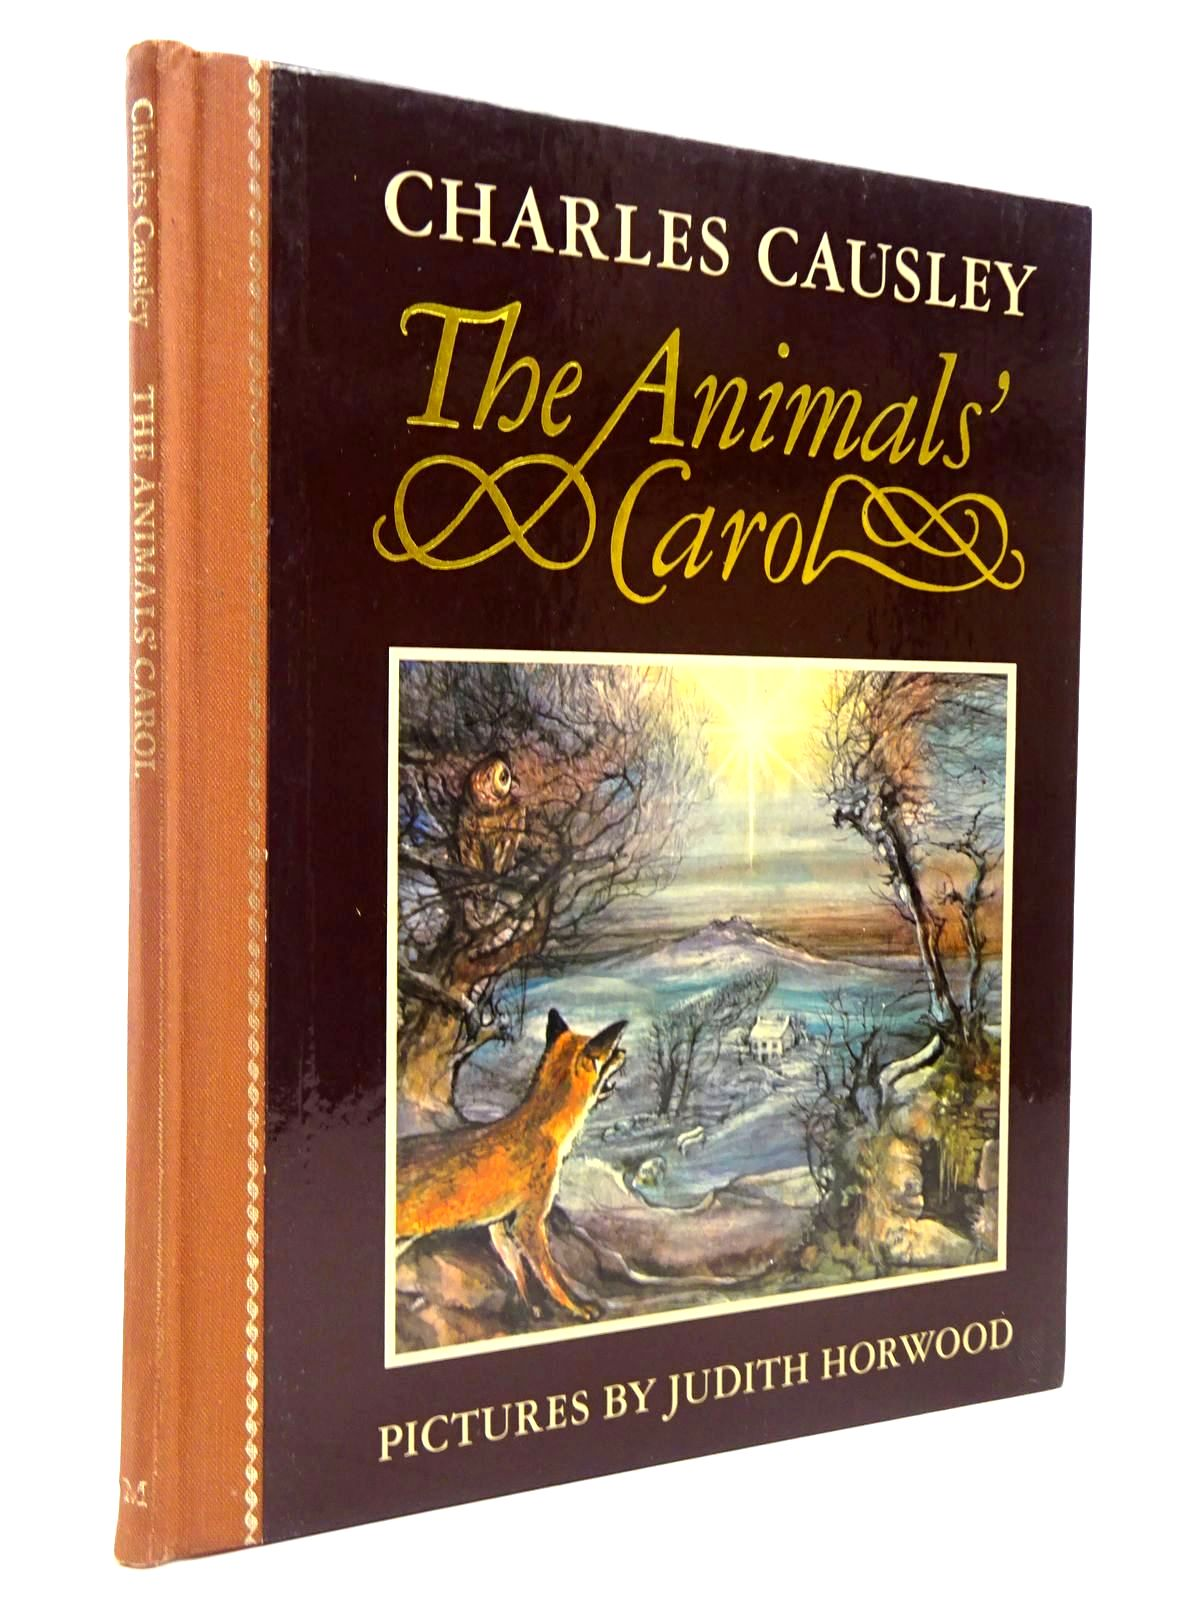 Photo of THE ANIMALS' CAROL written by Causley, Charles illustrated by Horwood, Judith published by Macmillan London Limited (STOCK CODE: 2130582)  for sale by Stella & Rose's Books